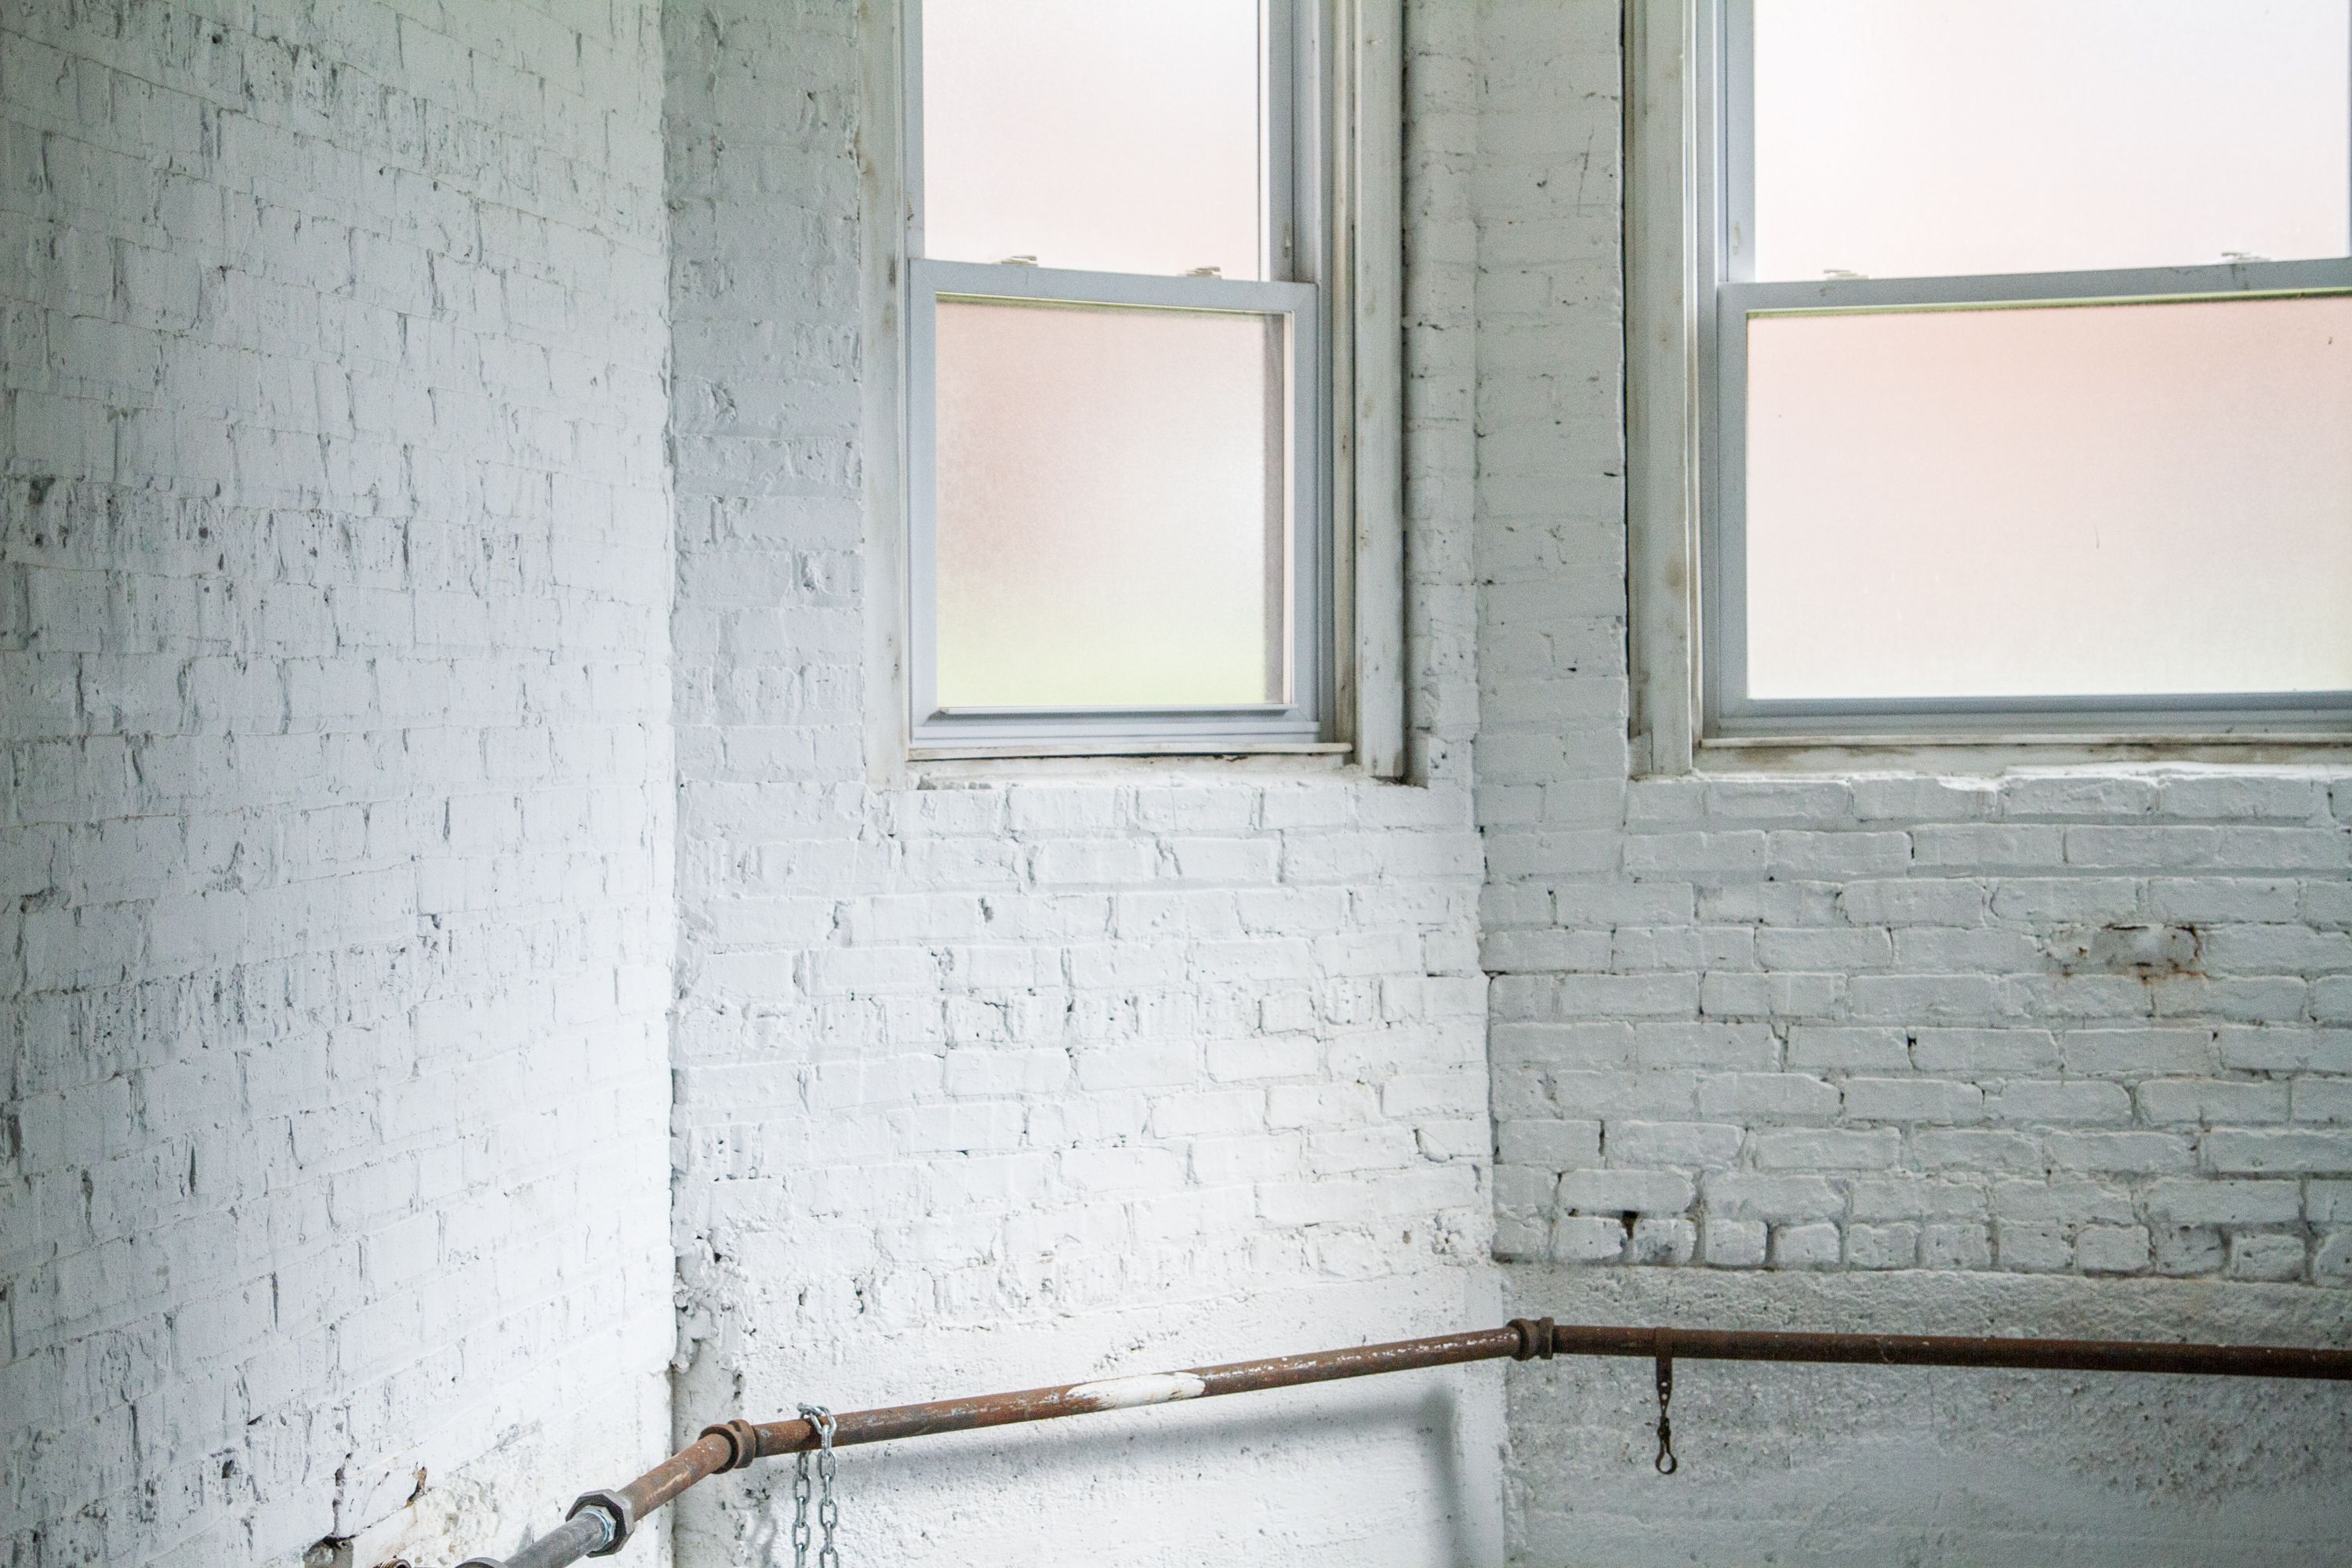 How To Clean Mold Off Basement Concrete Walls Hunker Waterproofing Basement Cleaning Mold Concrete Wall